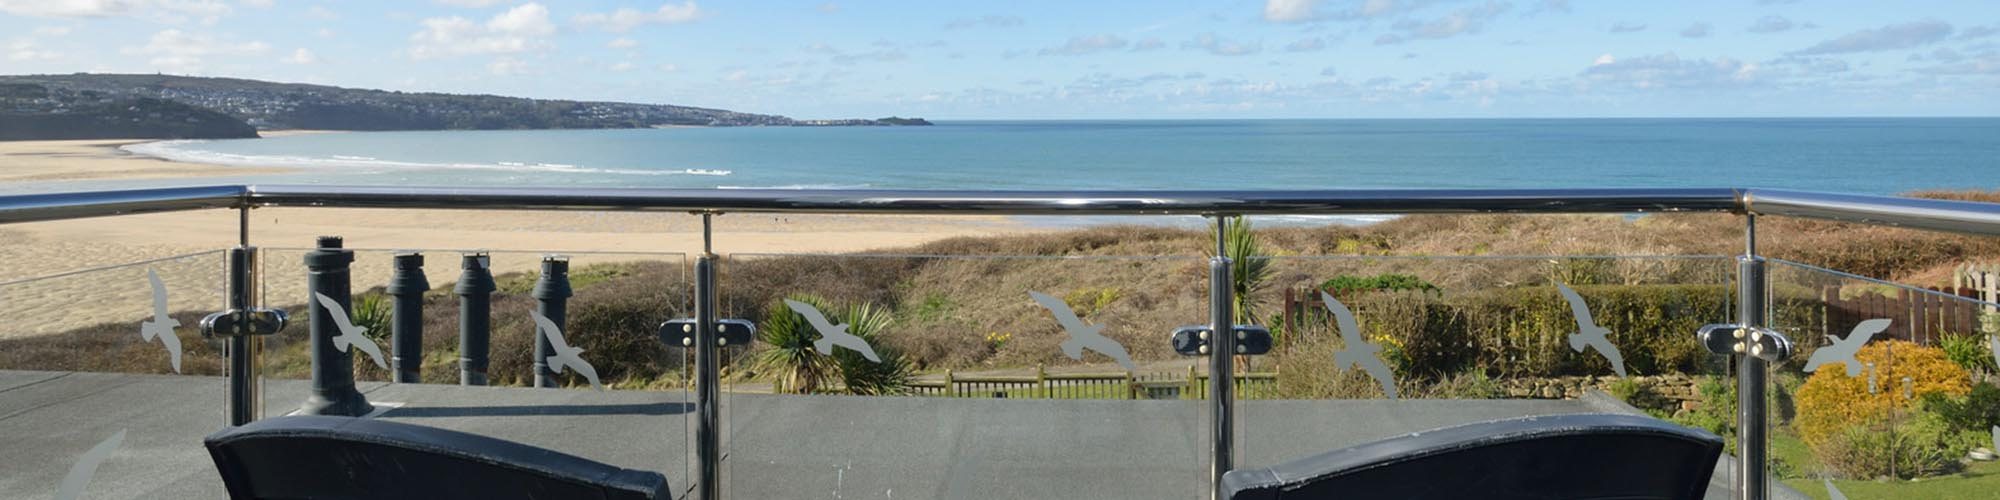 Self Catering Portreath - Beach View House